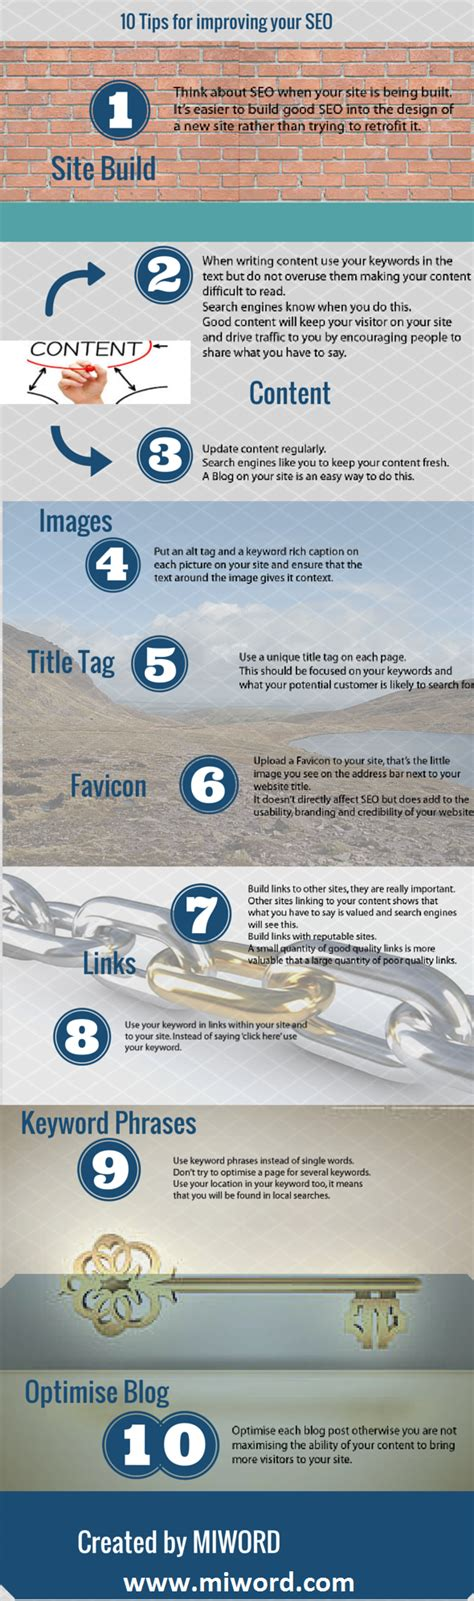 visitor pattern overuse 10 tips for search engine optimisation seo